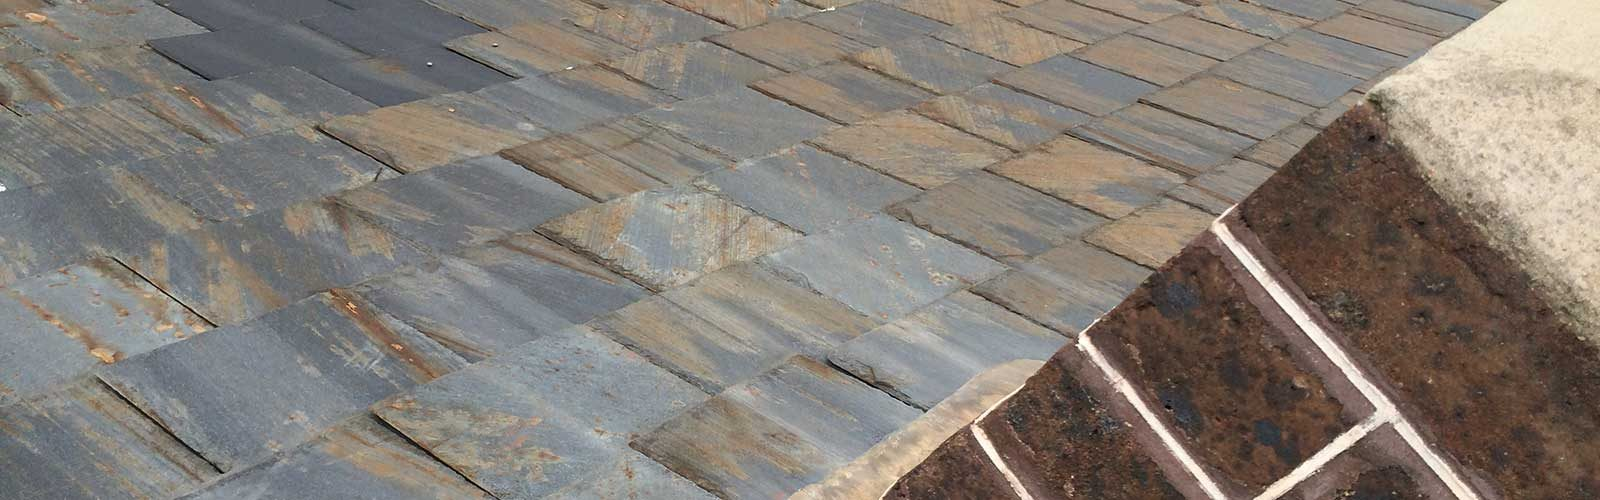 Slate Roofing Durability in Coastal Areas